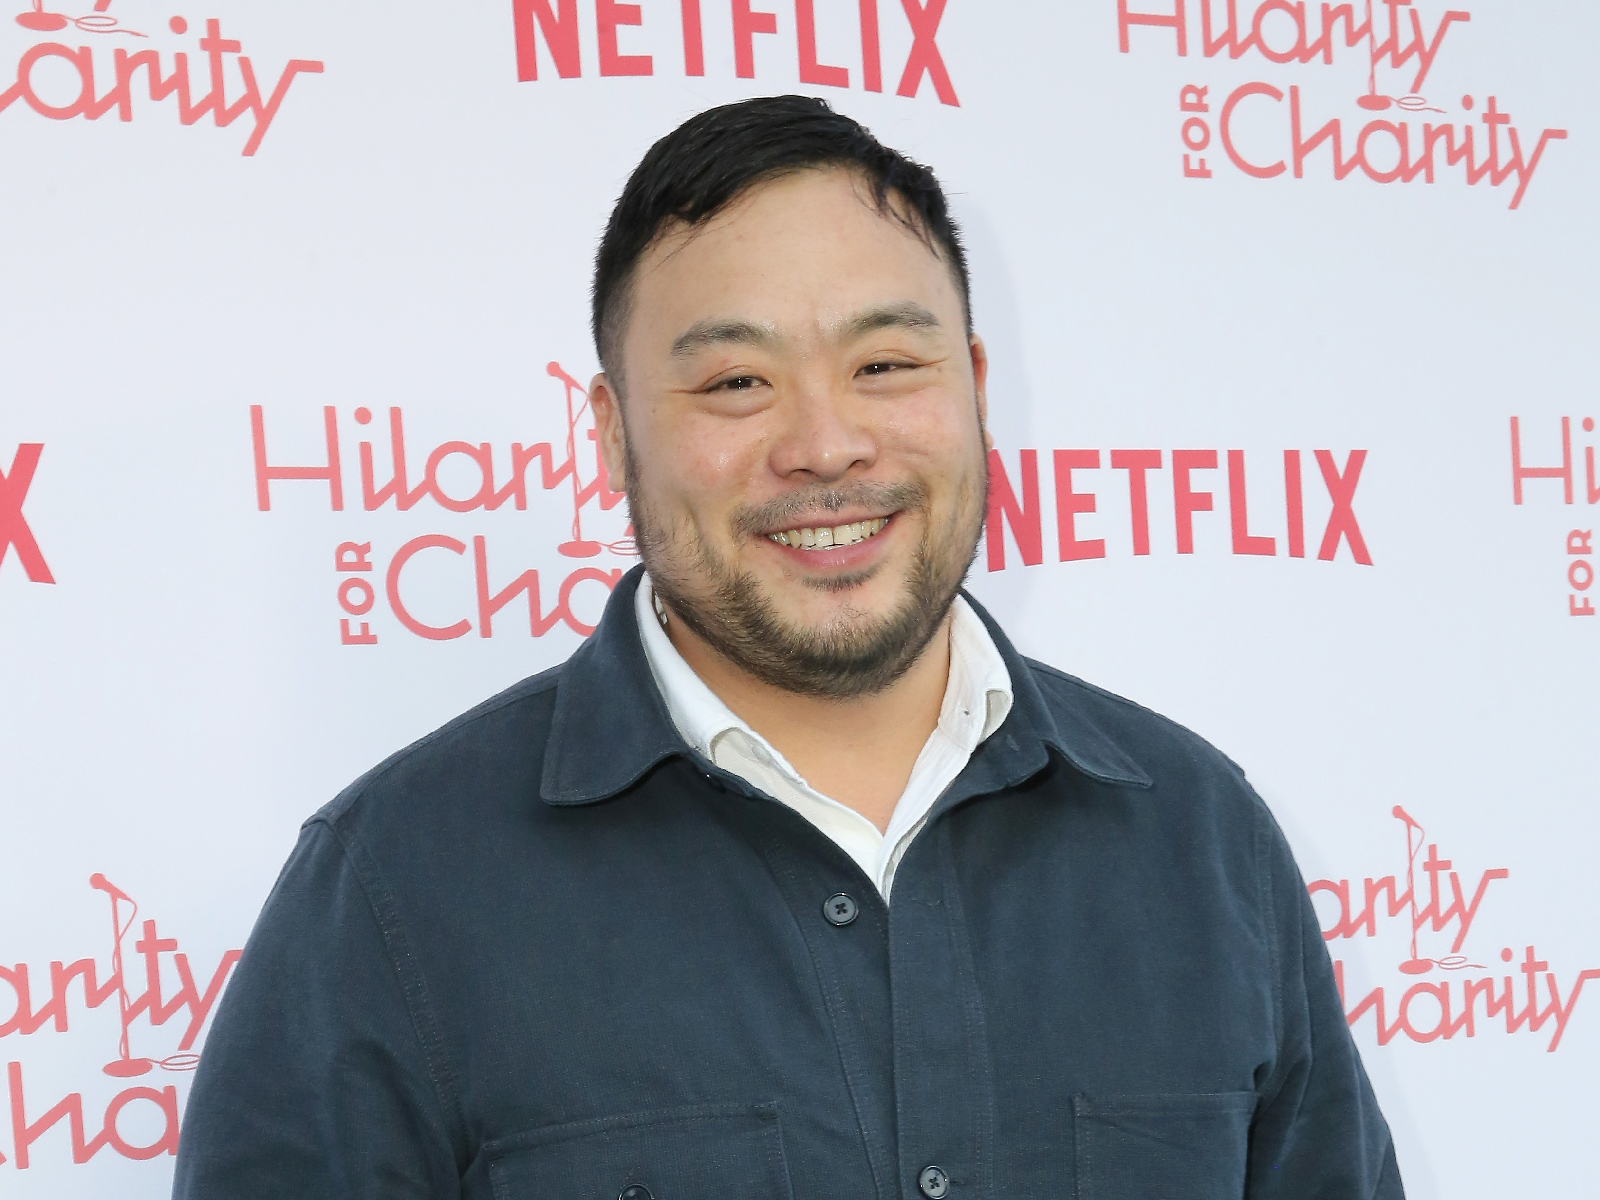 david-chang-netflix-FT-BLOG0719.jpg